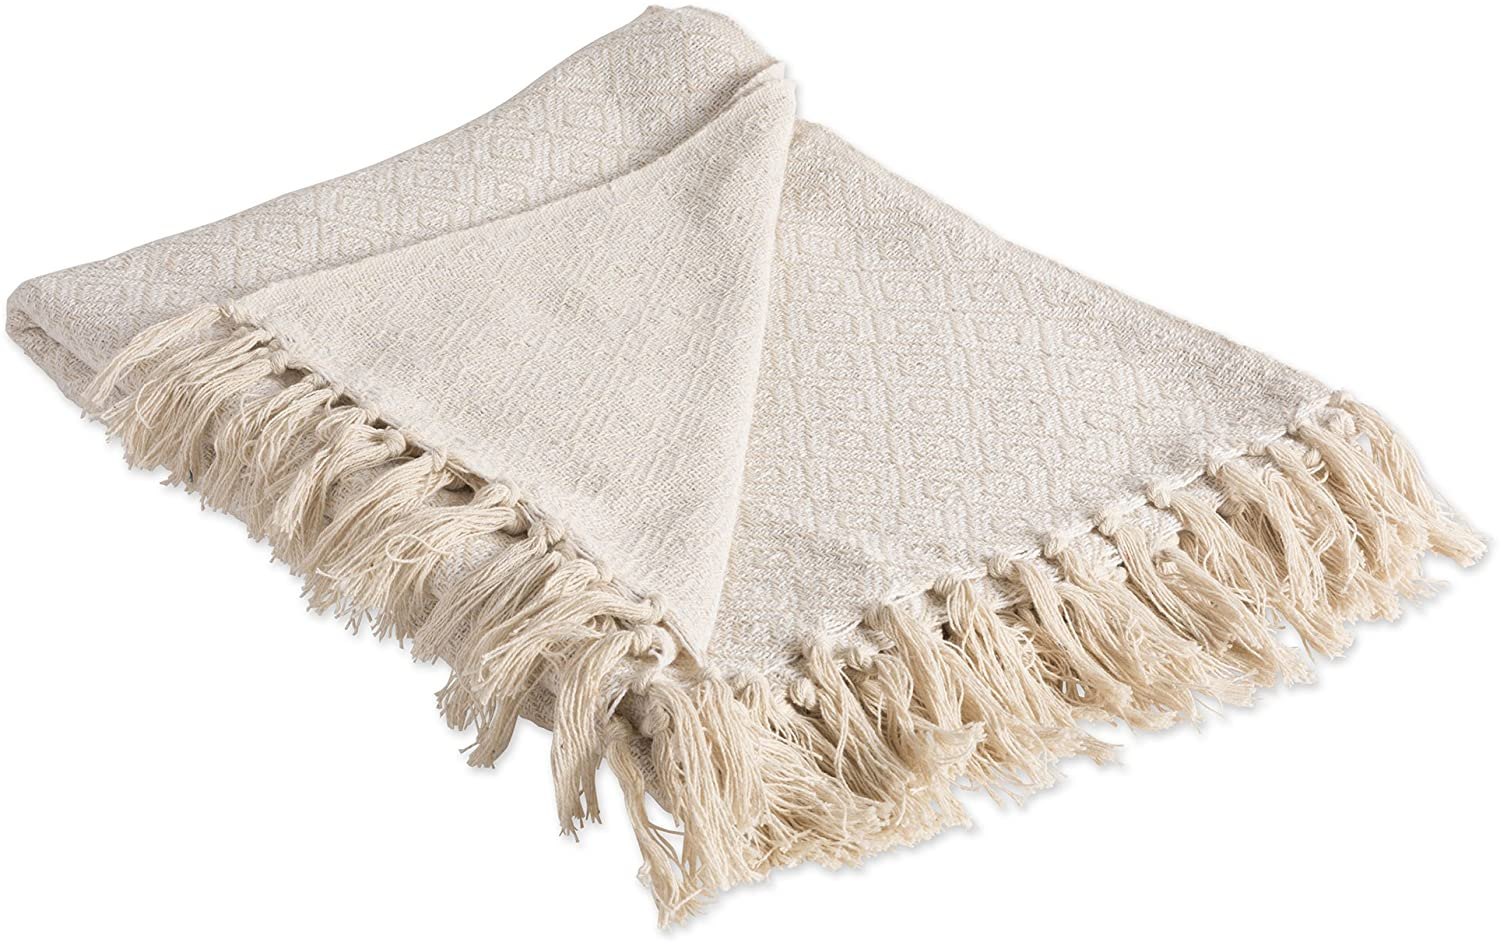 """DII Rustic Farmhouse Cotton Diamond Blanket Throw with Fringe For Chair, Couch, Picnic, Camping, Beach, & Everyday Use , 50 x 60"""" - Fields of Diamond Natural"""